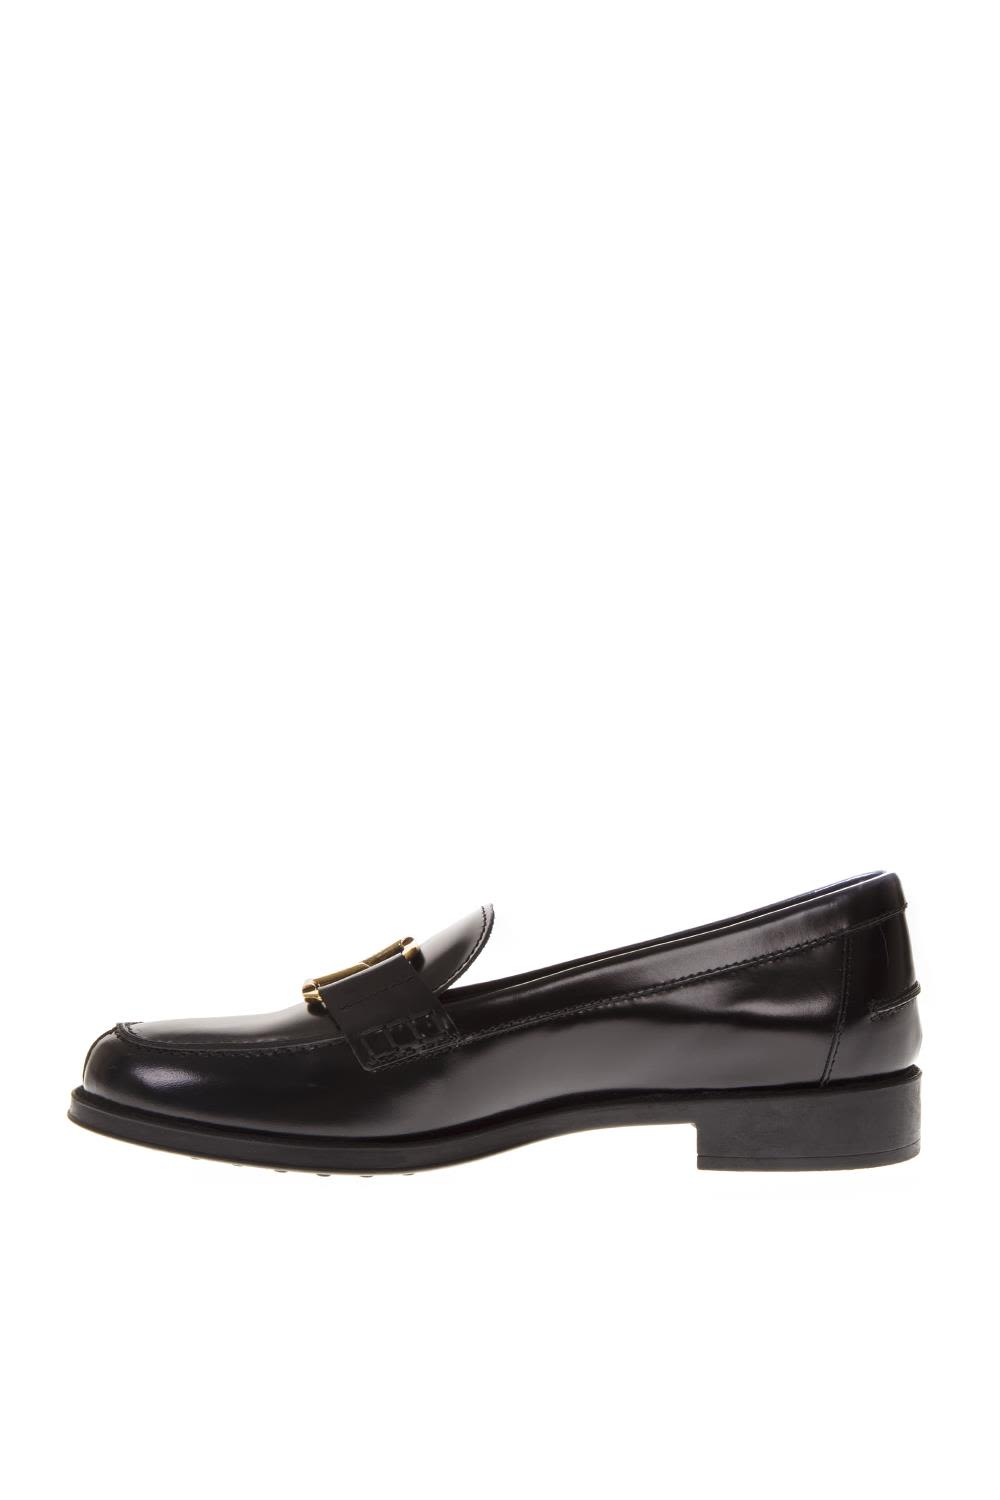 02ad8a9a0fd ... Tod s Black Leather Loafers - Black